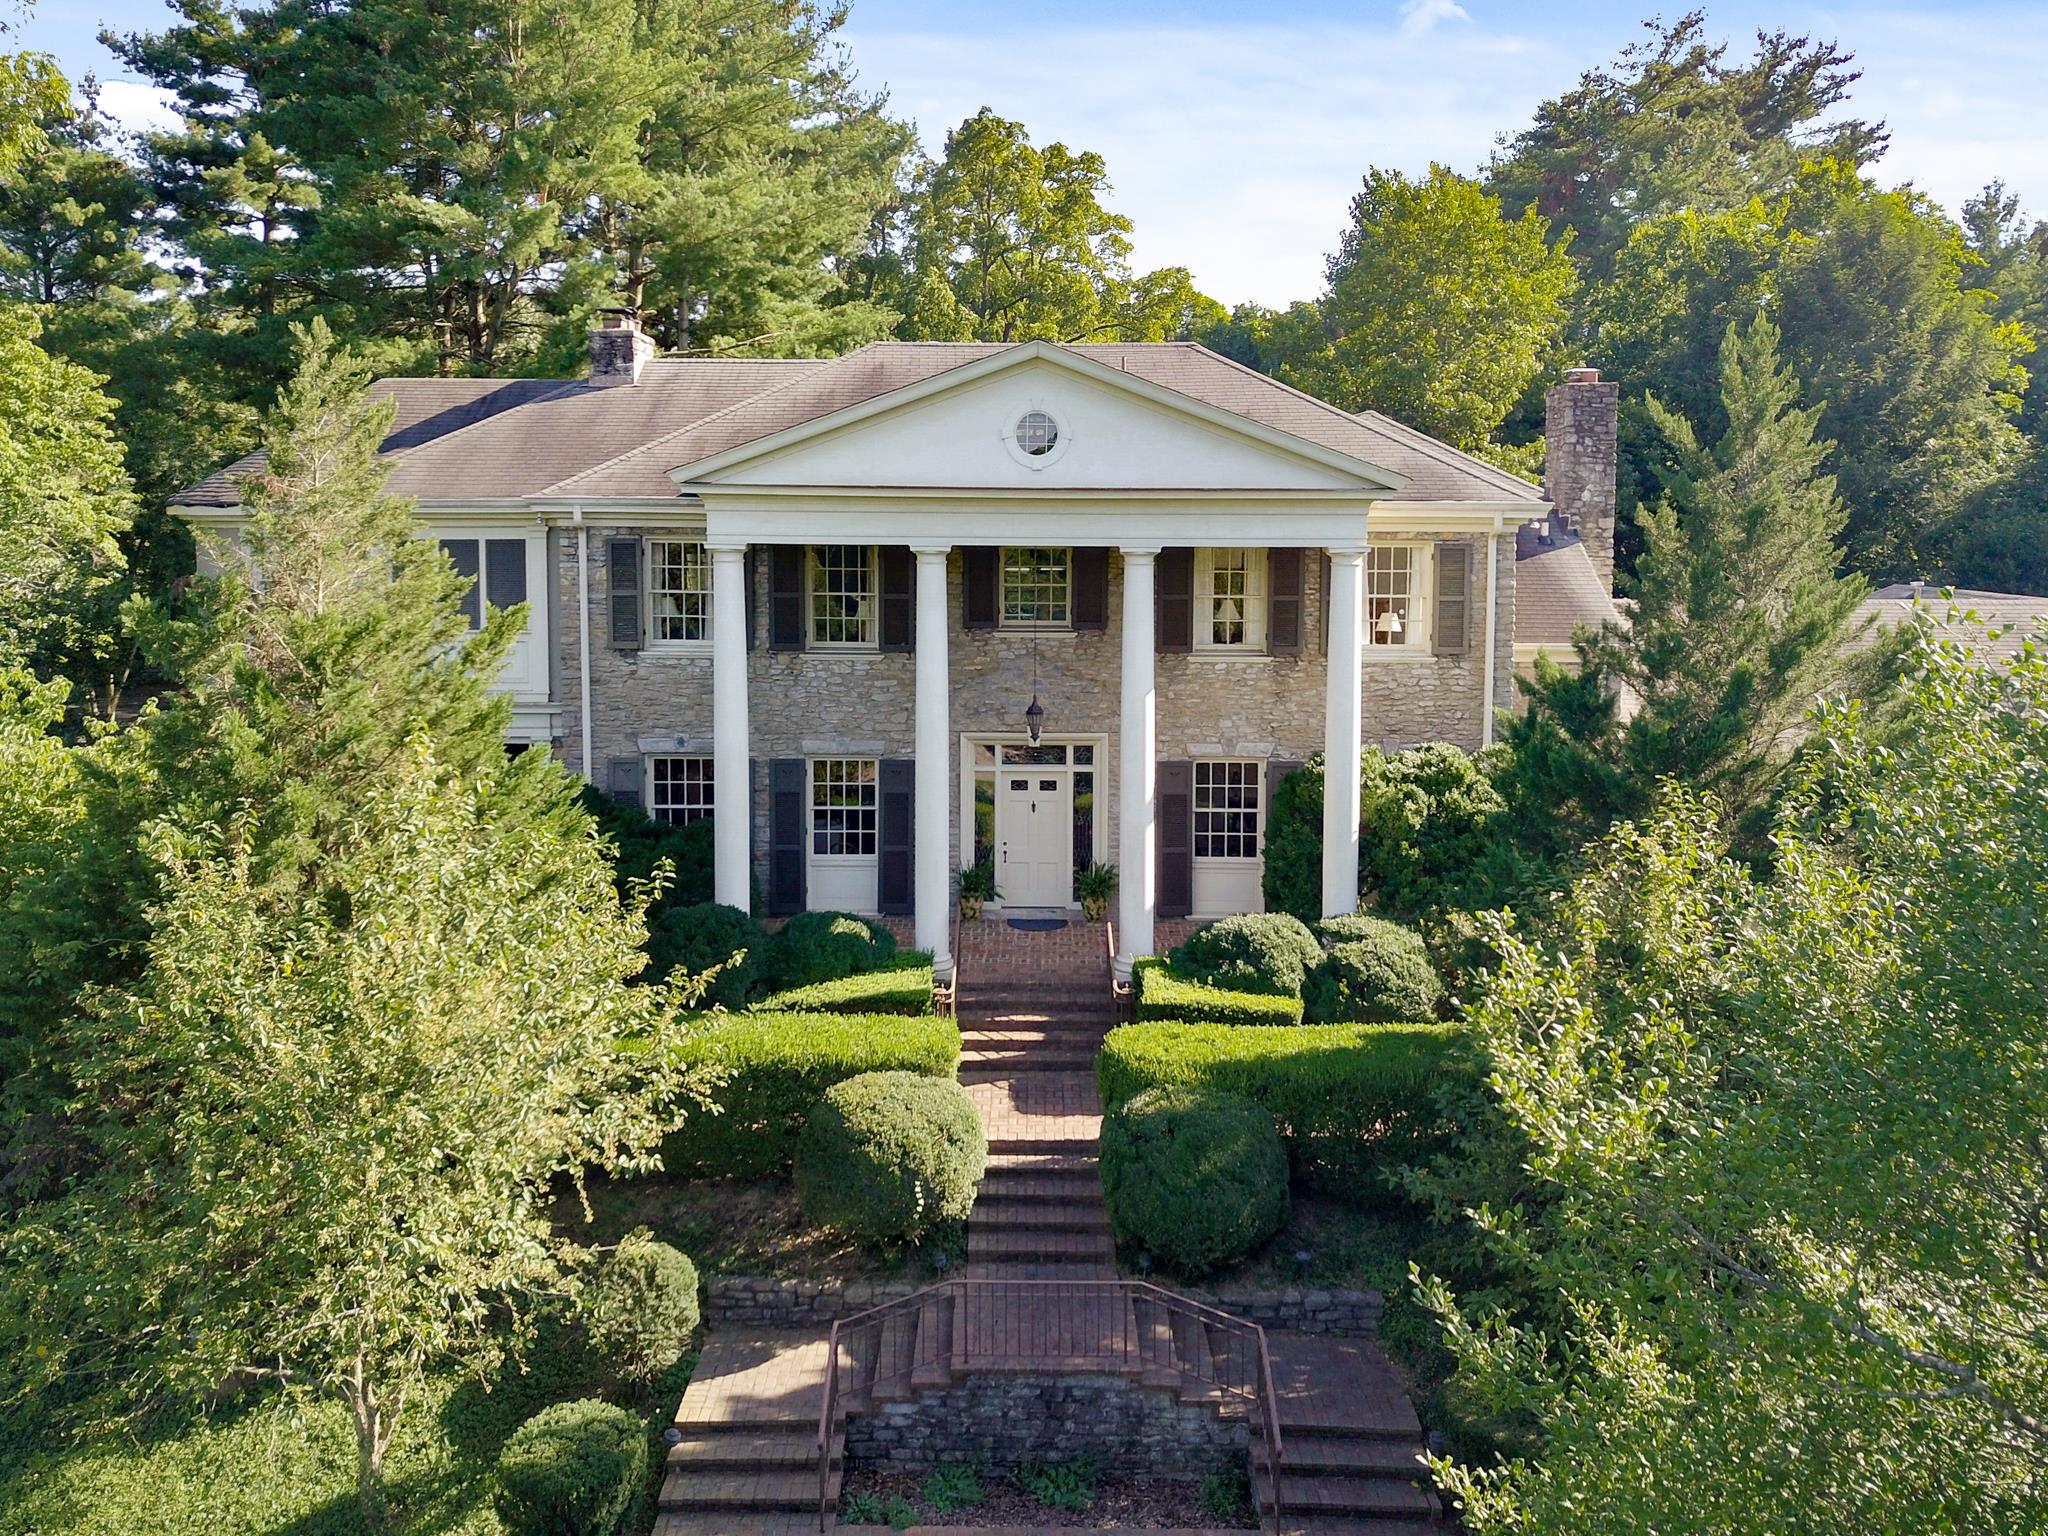 806 Glen Leven Dr, Nashville, TN 37204 - Nashville, TN real estate listing